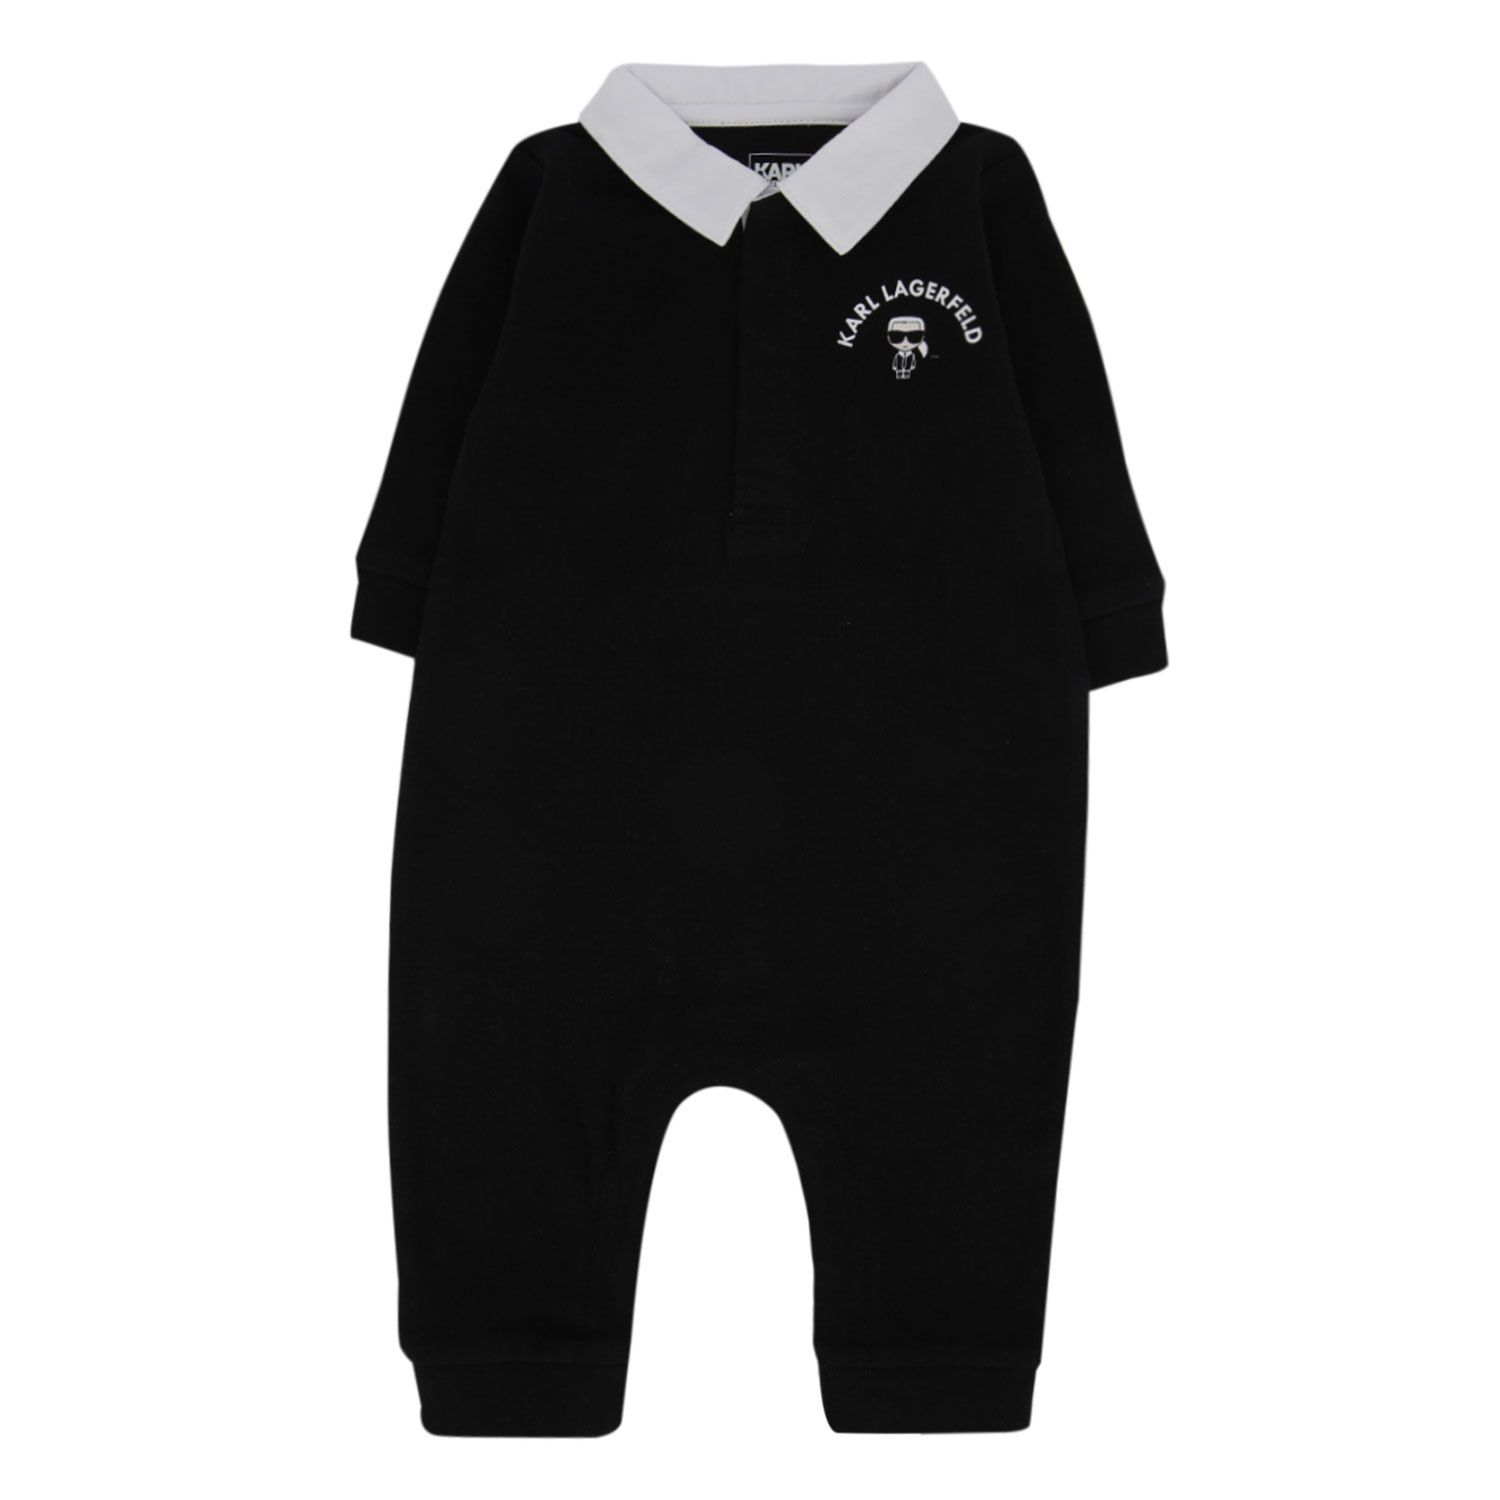 Picture of Karl Lagerfeld Z94055 baby playsuit black